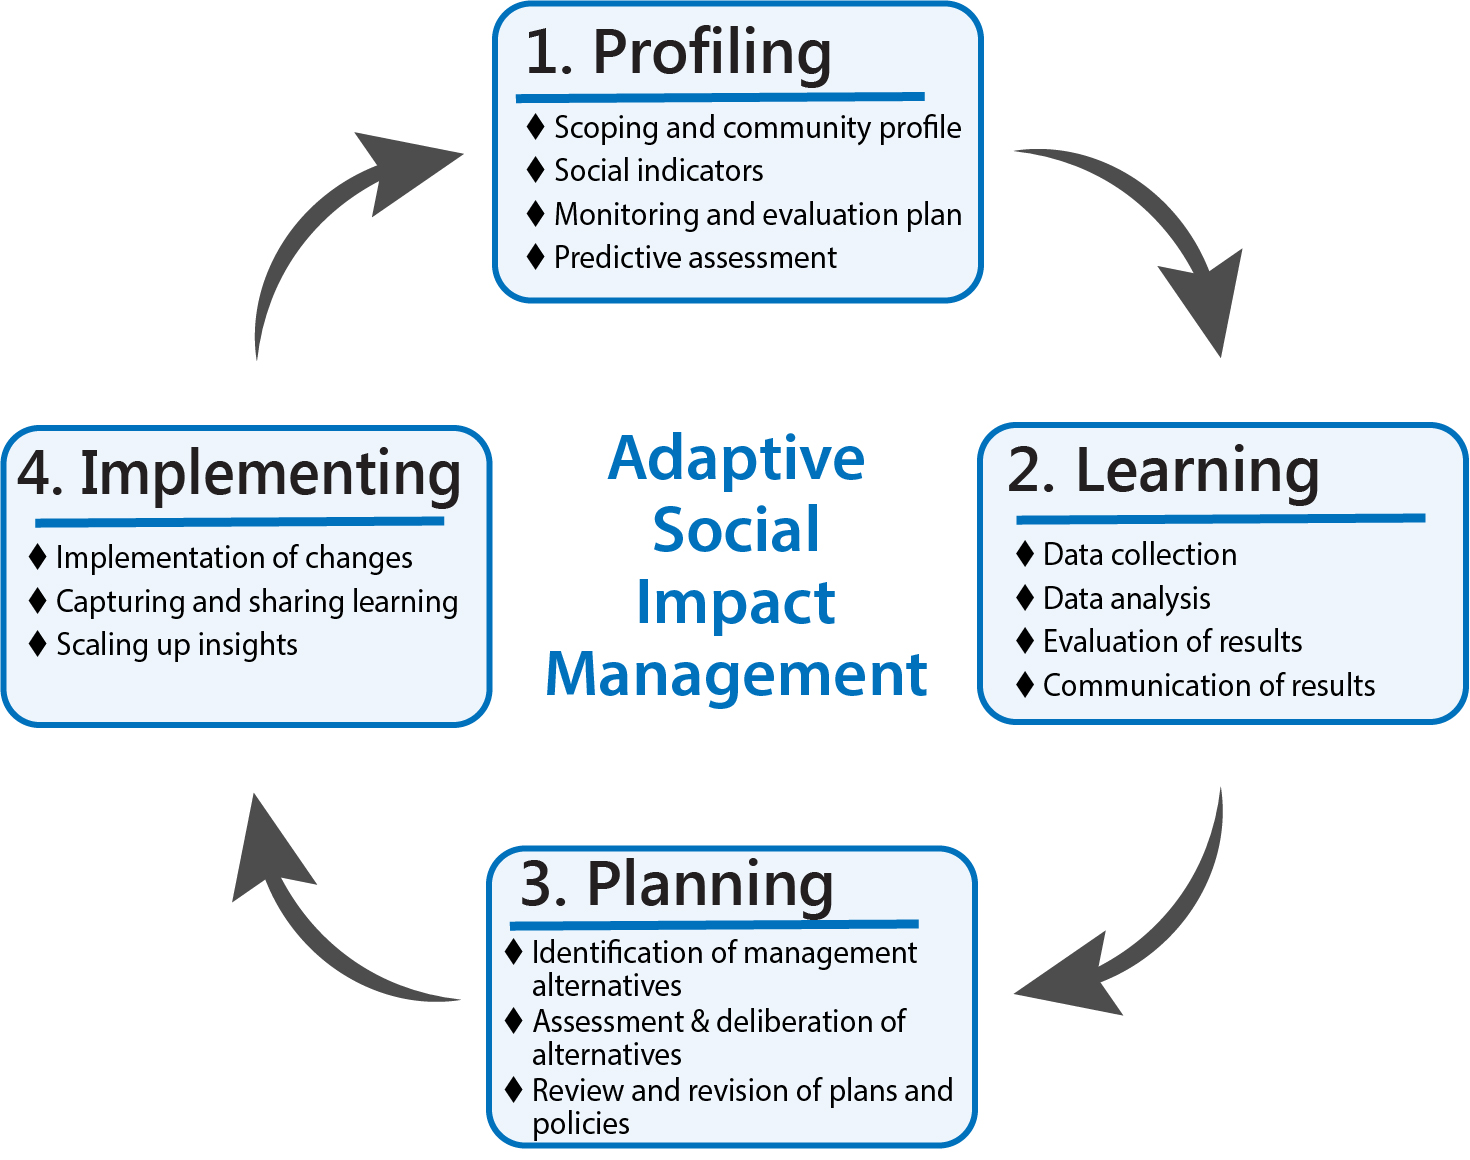 Figure 1 - The cycle of adaptive social impact management for conservation and environmental management